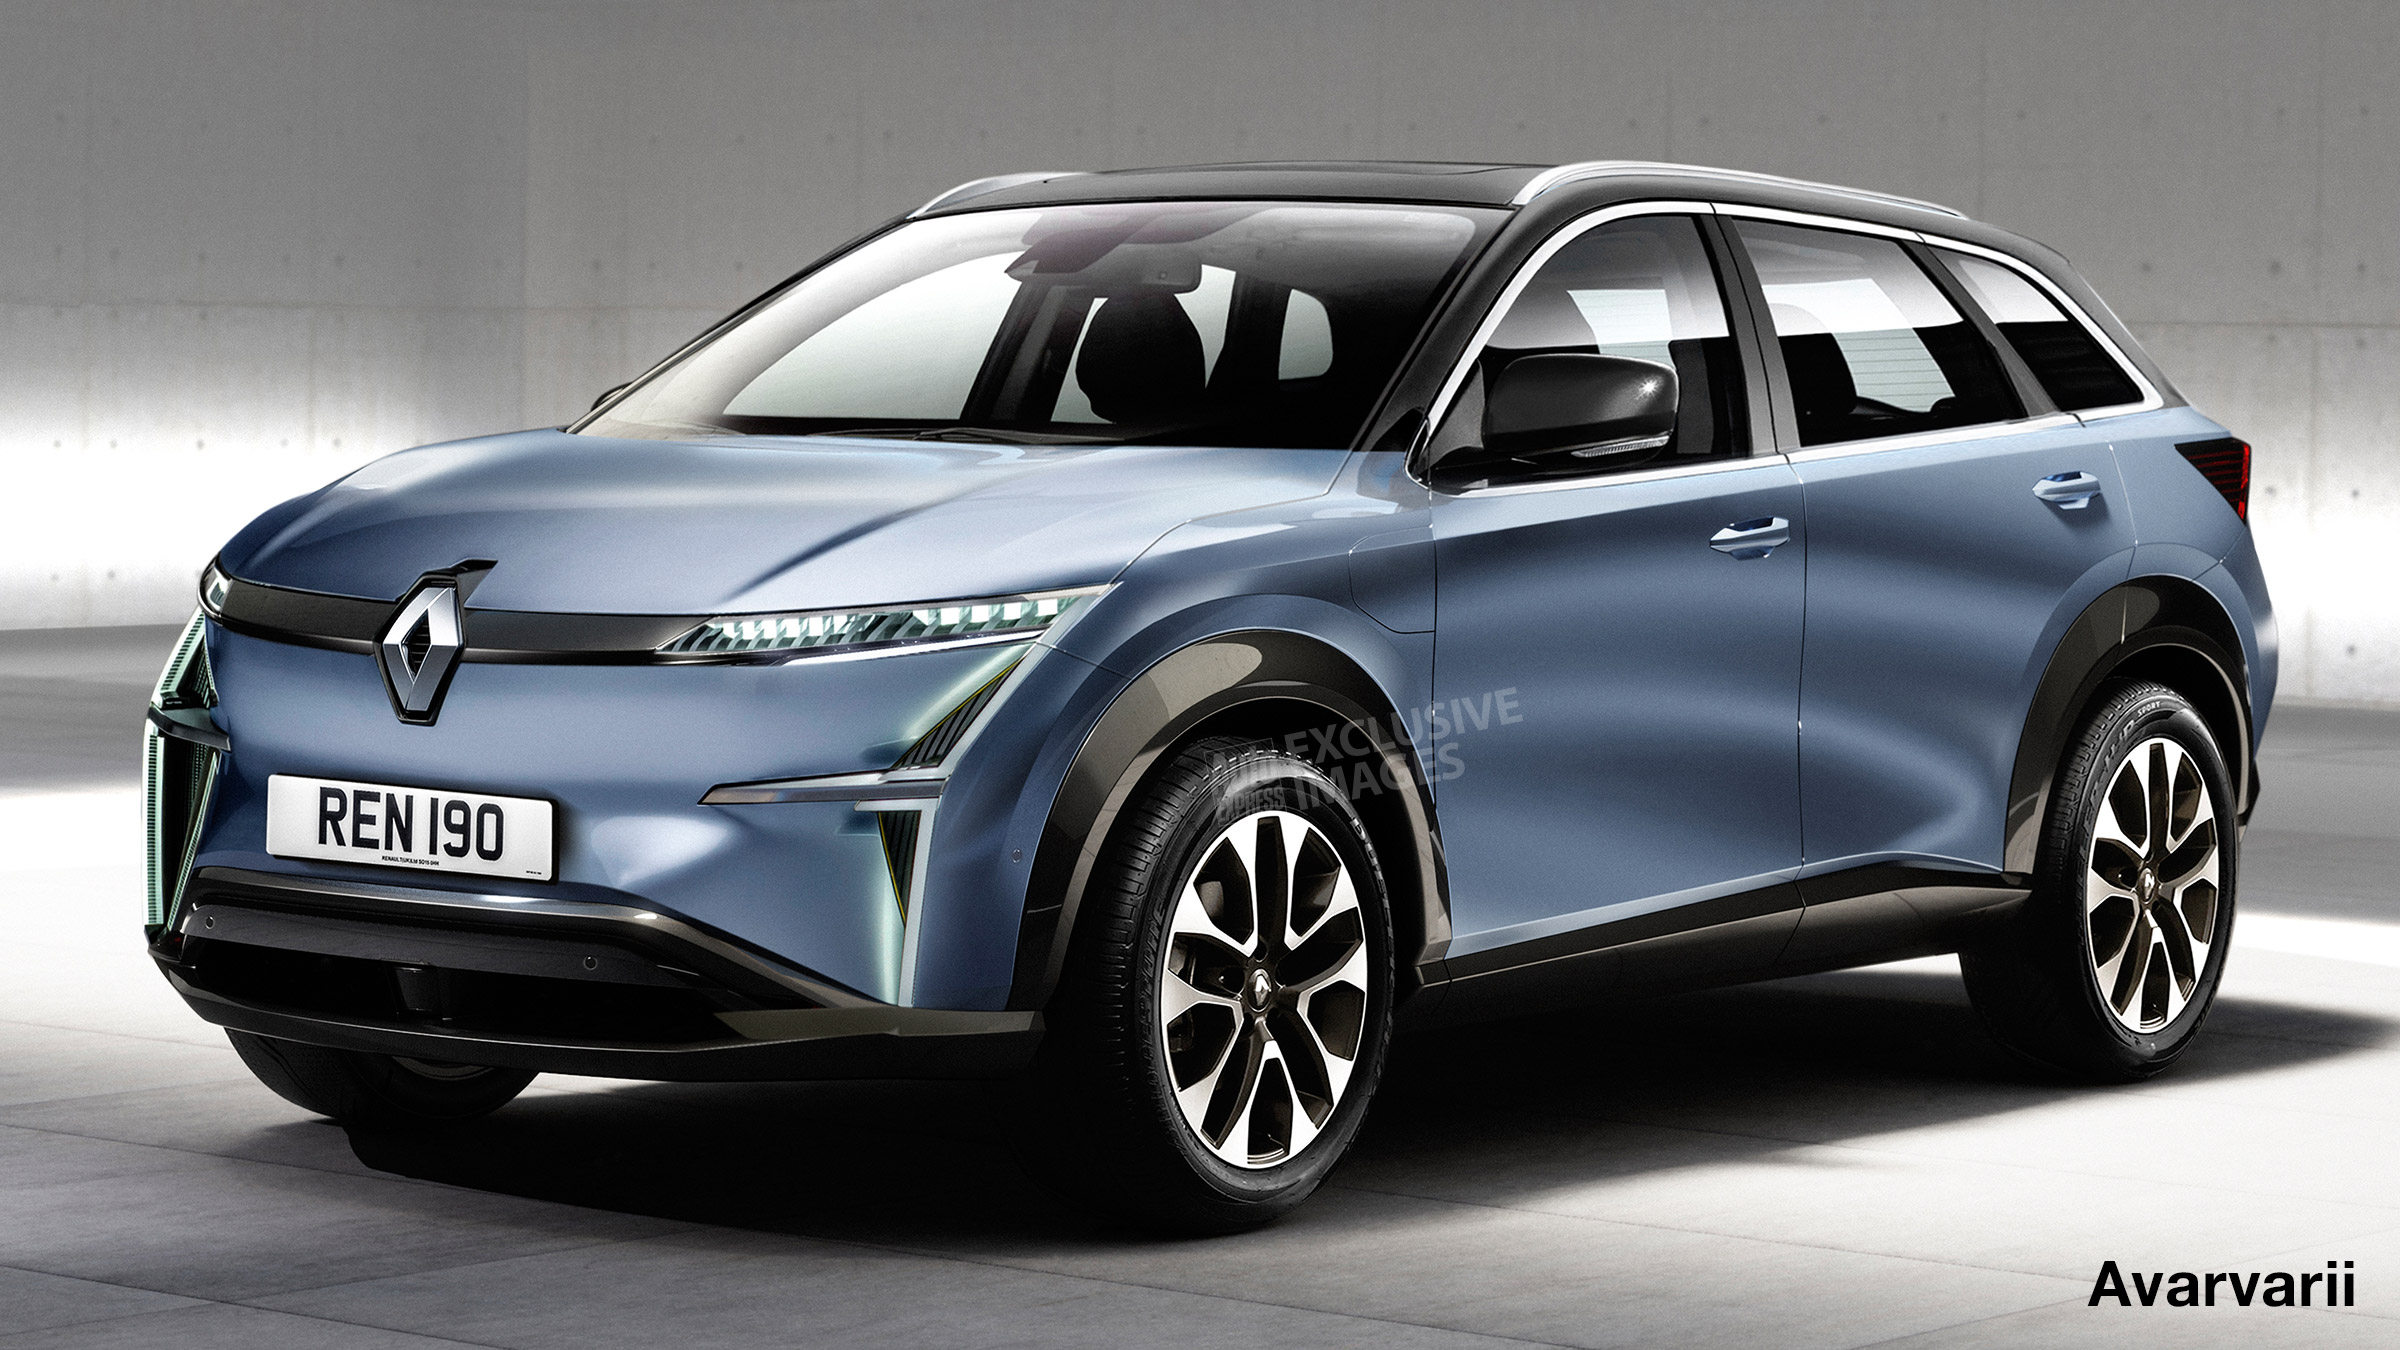 New all-electric Renault SUV to arrive in next 18 months | Auto Express